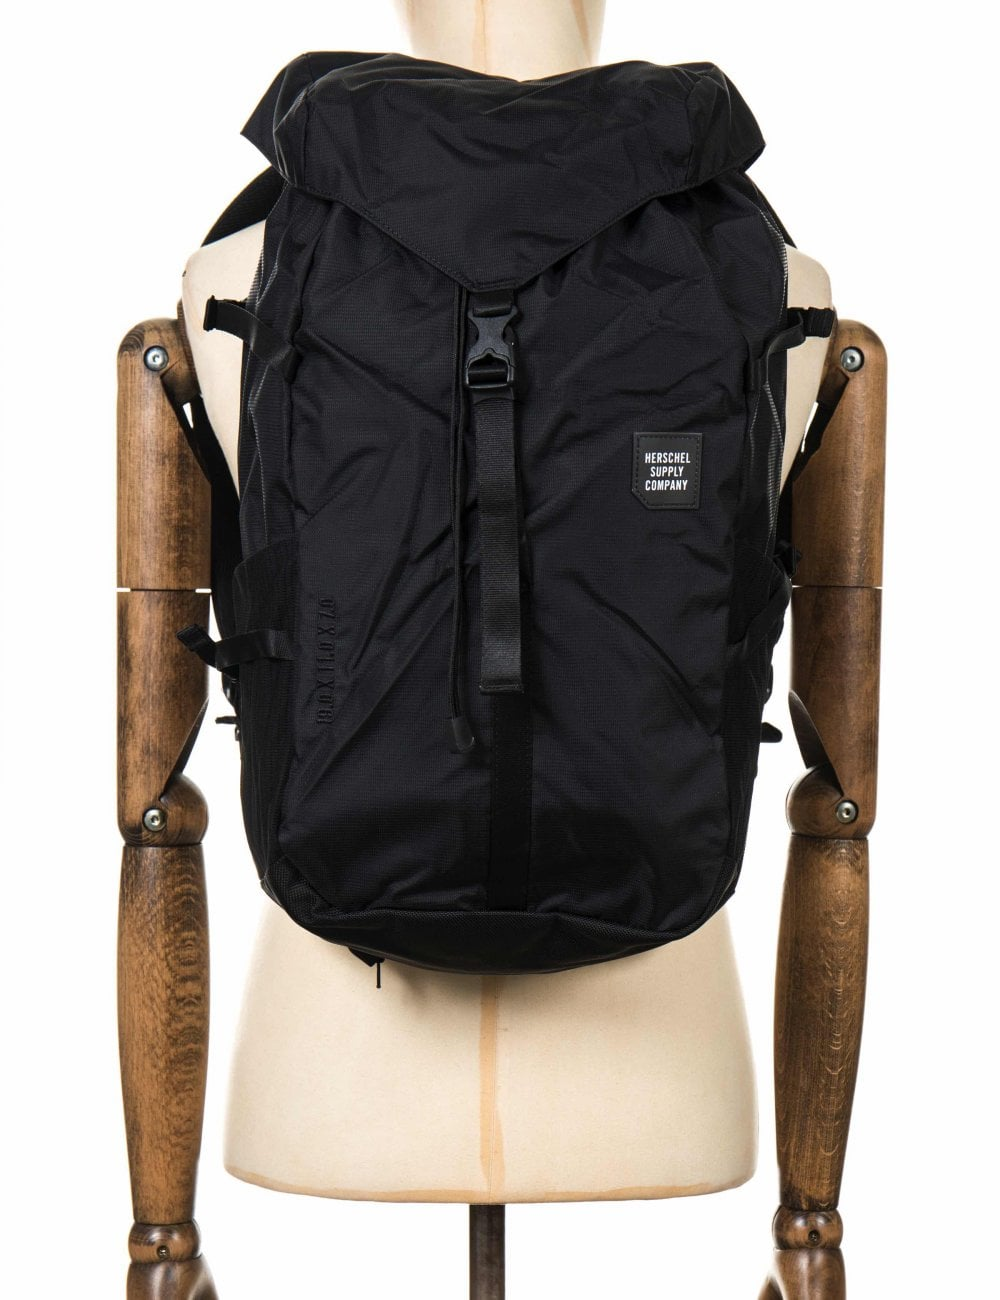 59c8009c013 Herschel Supply Co Barlow Trail Backpack Large 27L - Black ...